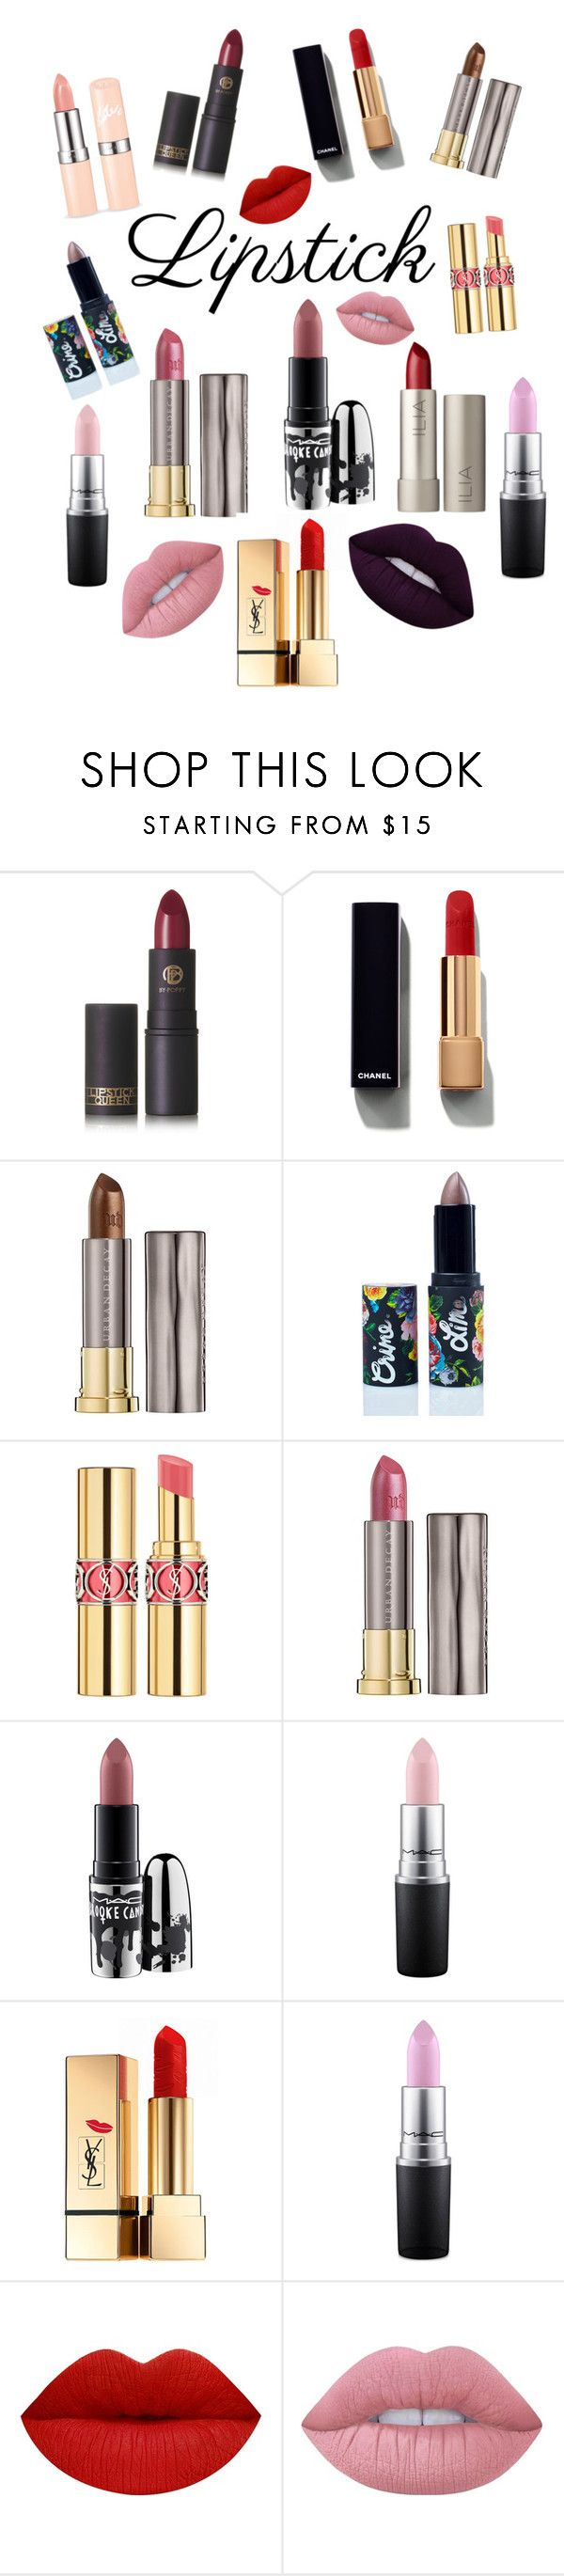 """Lipstick"" by redbone1961114 on Polyvore featuring beauty, Lipstick Queen, Chanel, Urban Decay, Lime Crime, Yves Saint Laurent, MAC Cosmetics, Ilia and summerlipstick"